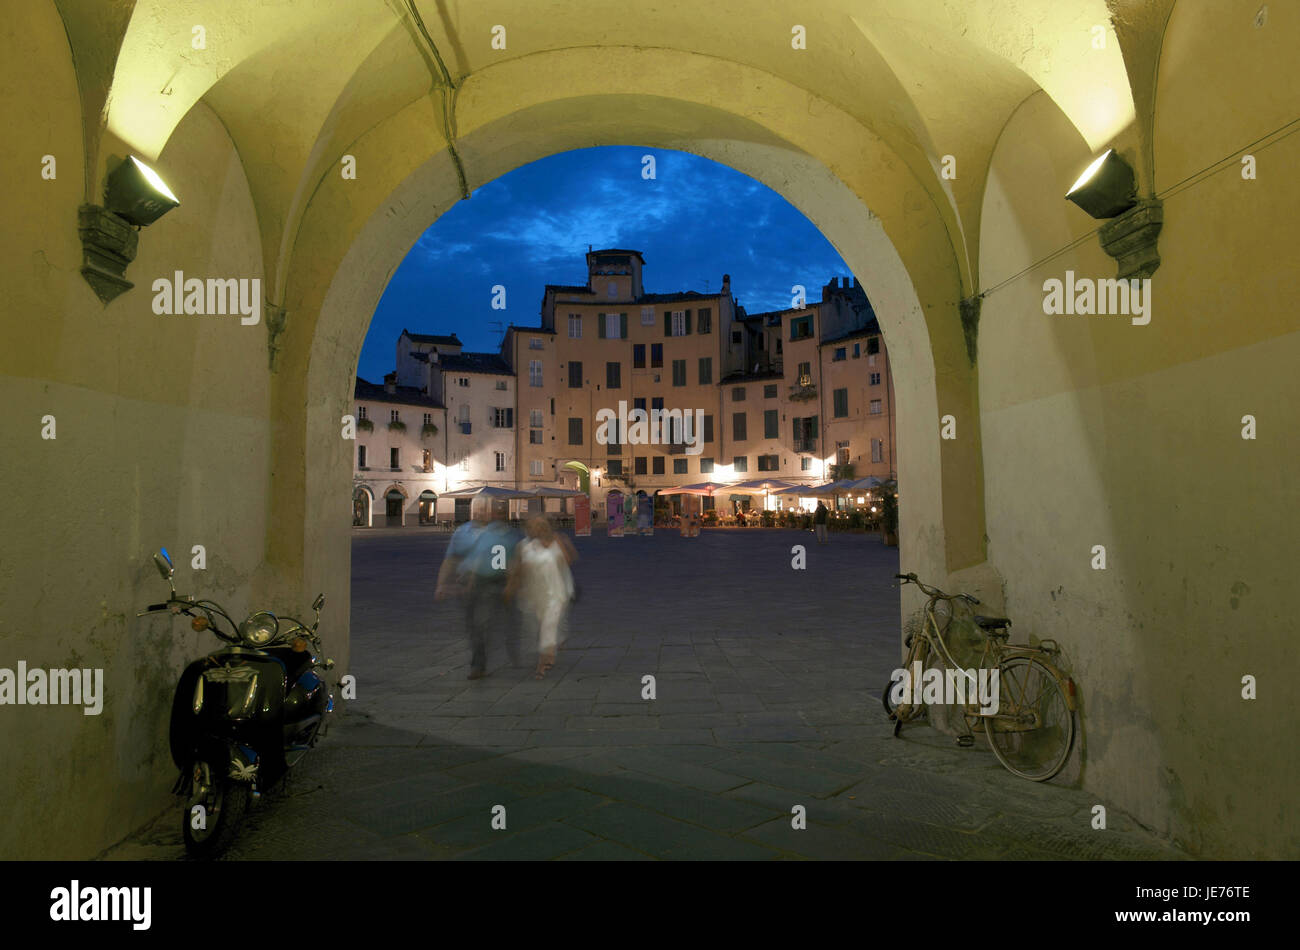 Italy, Tuscany, Lucca, Piazza del Mercato at night, view by an archway, - Stock Image